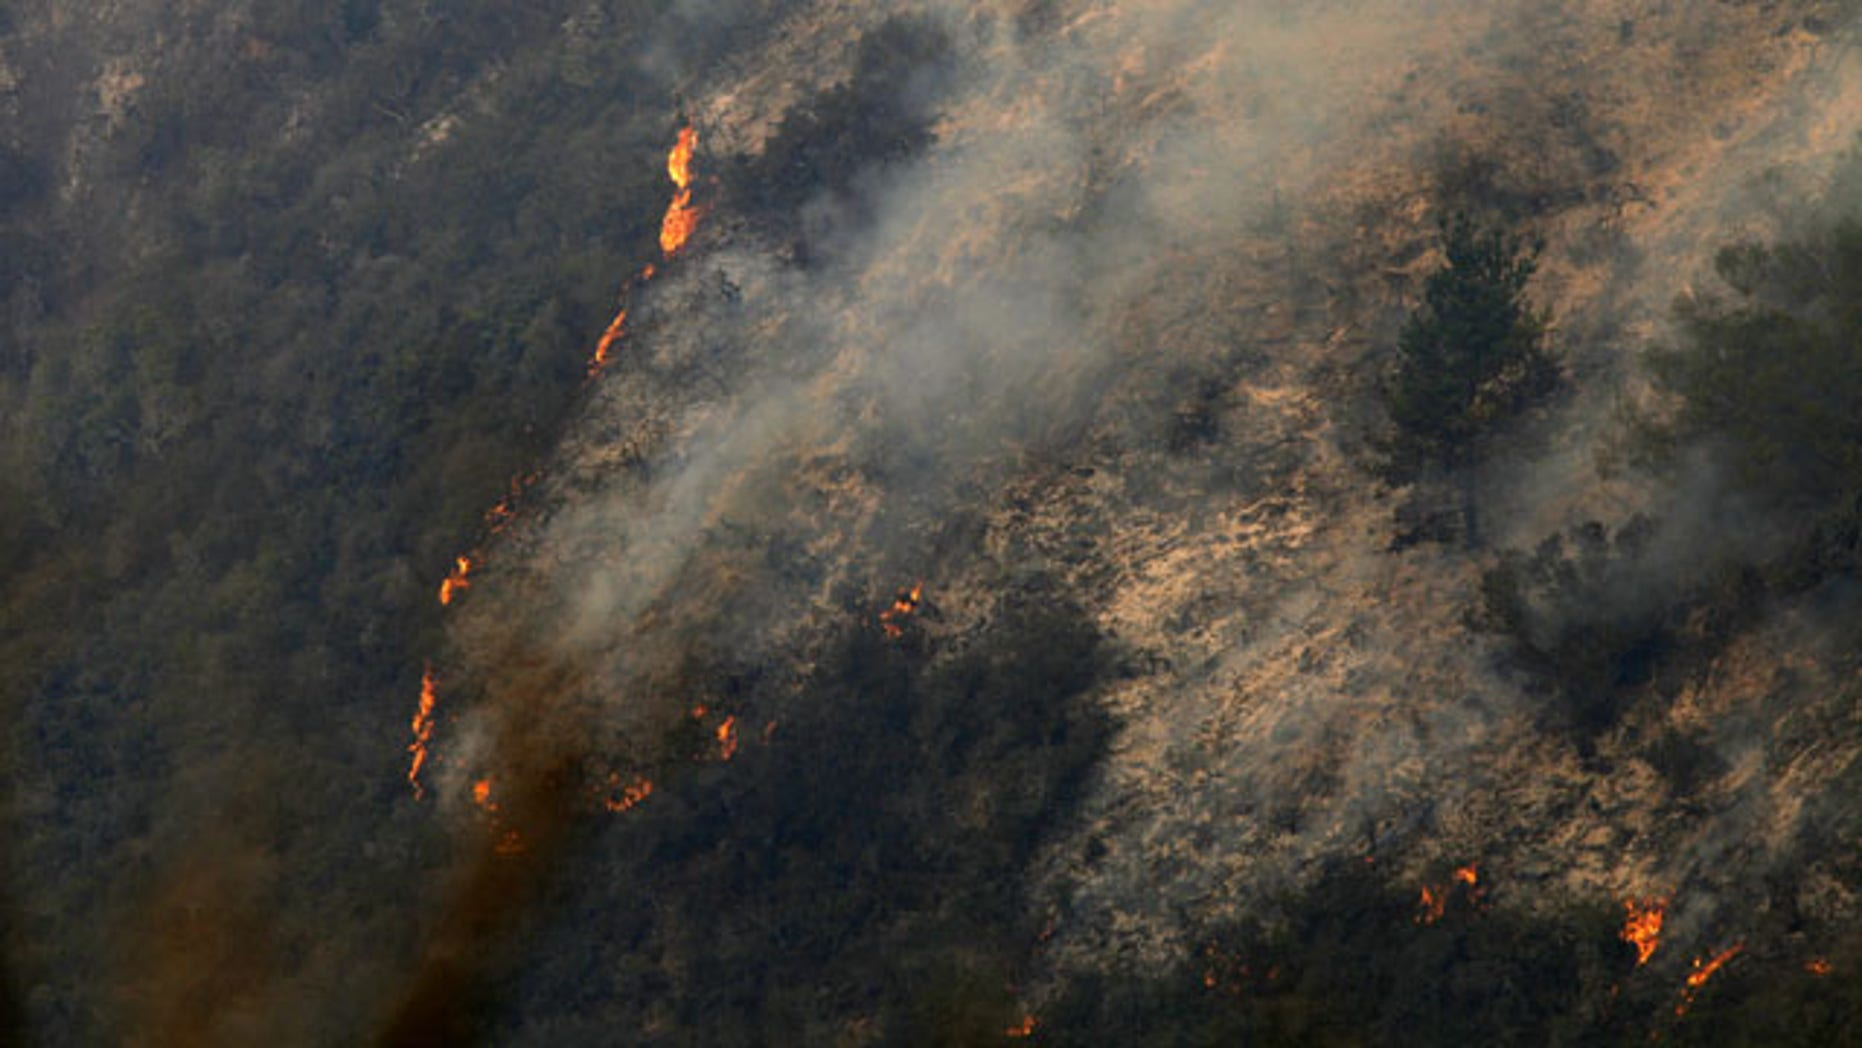 December 17, 2013: Flames creep down a hillside as firefighters battle a fire in the Pfeiffer Ridge area of Big Sur, Calif. Firefighters are making gains against the unusual fall wildfire that has destroyed 15 homes and forced about 100 people to flee the forested mountains of California's scenic Big Sur region overlooking the Pacific. (AP Photo)